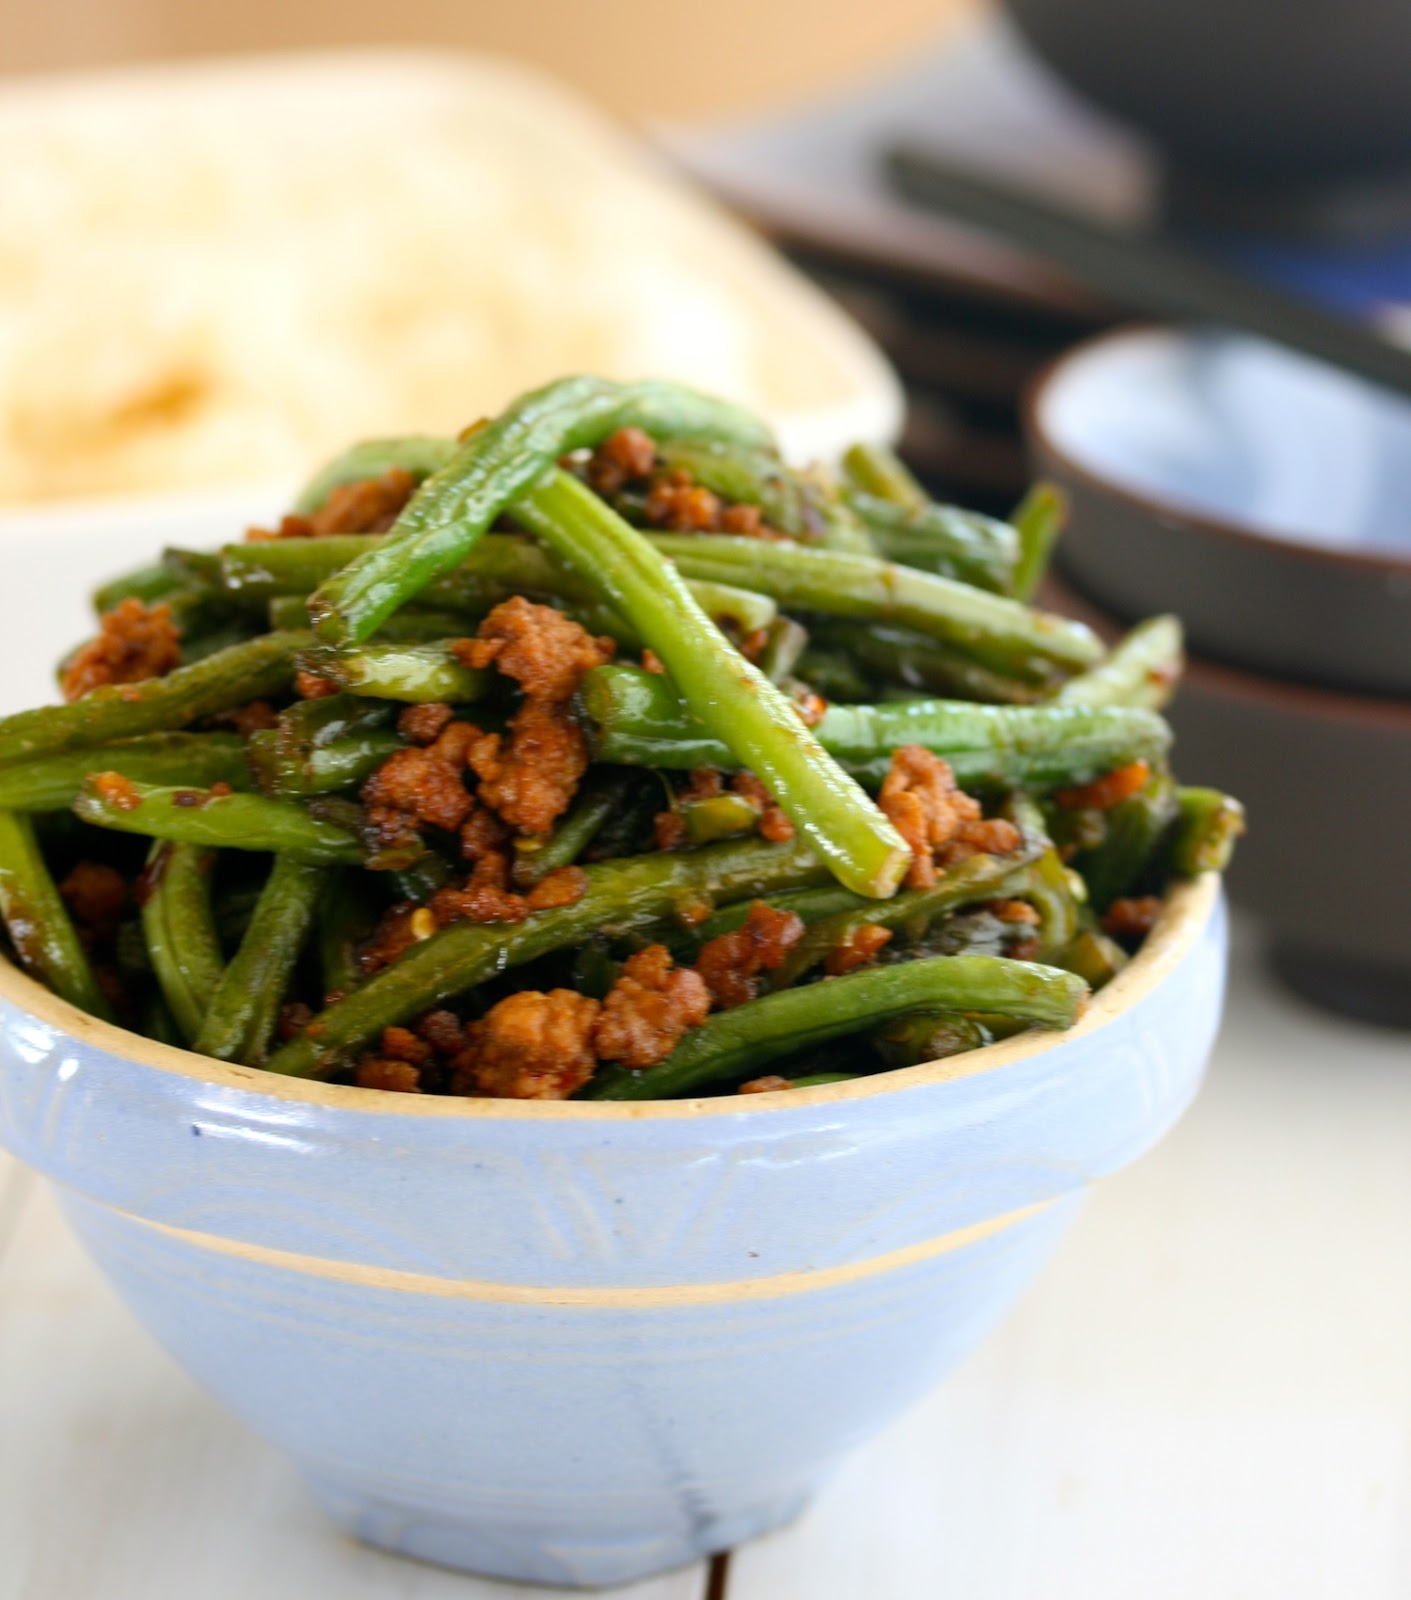 Angie Cooks In Portland: Spicy Chinese Green Beans With